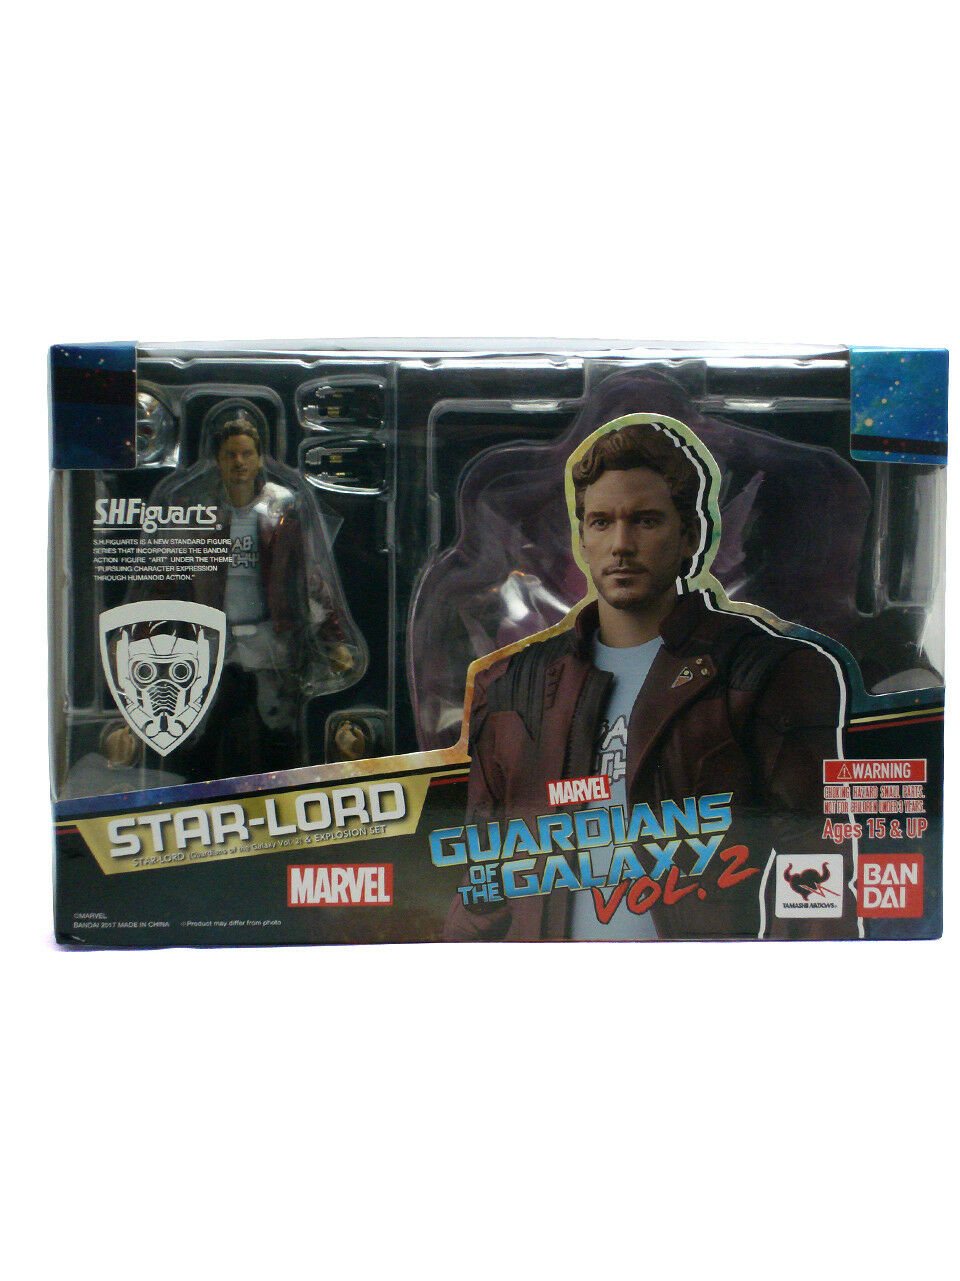 Bandai S.H. Figuarts Star-Lord Figure Tamashii Guardians Of The Galaxy Vol 2 New